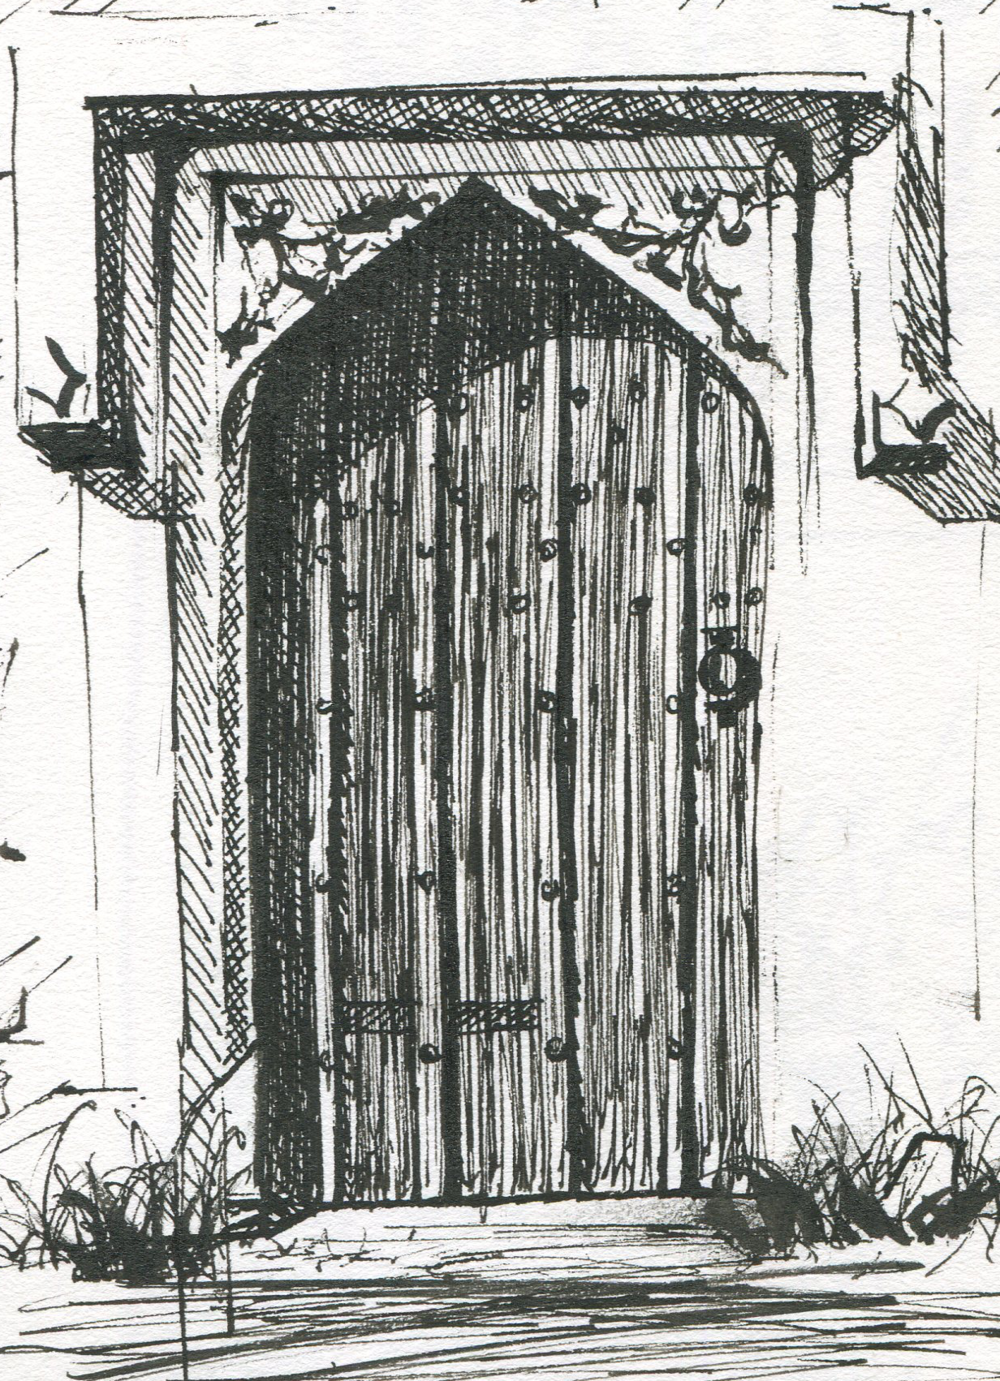 Pen and ink drawing of a door